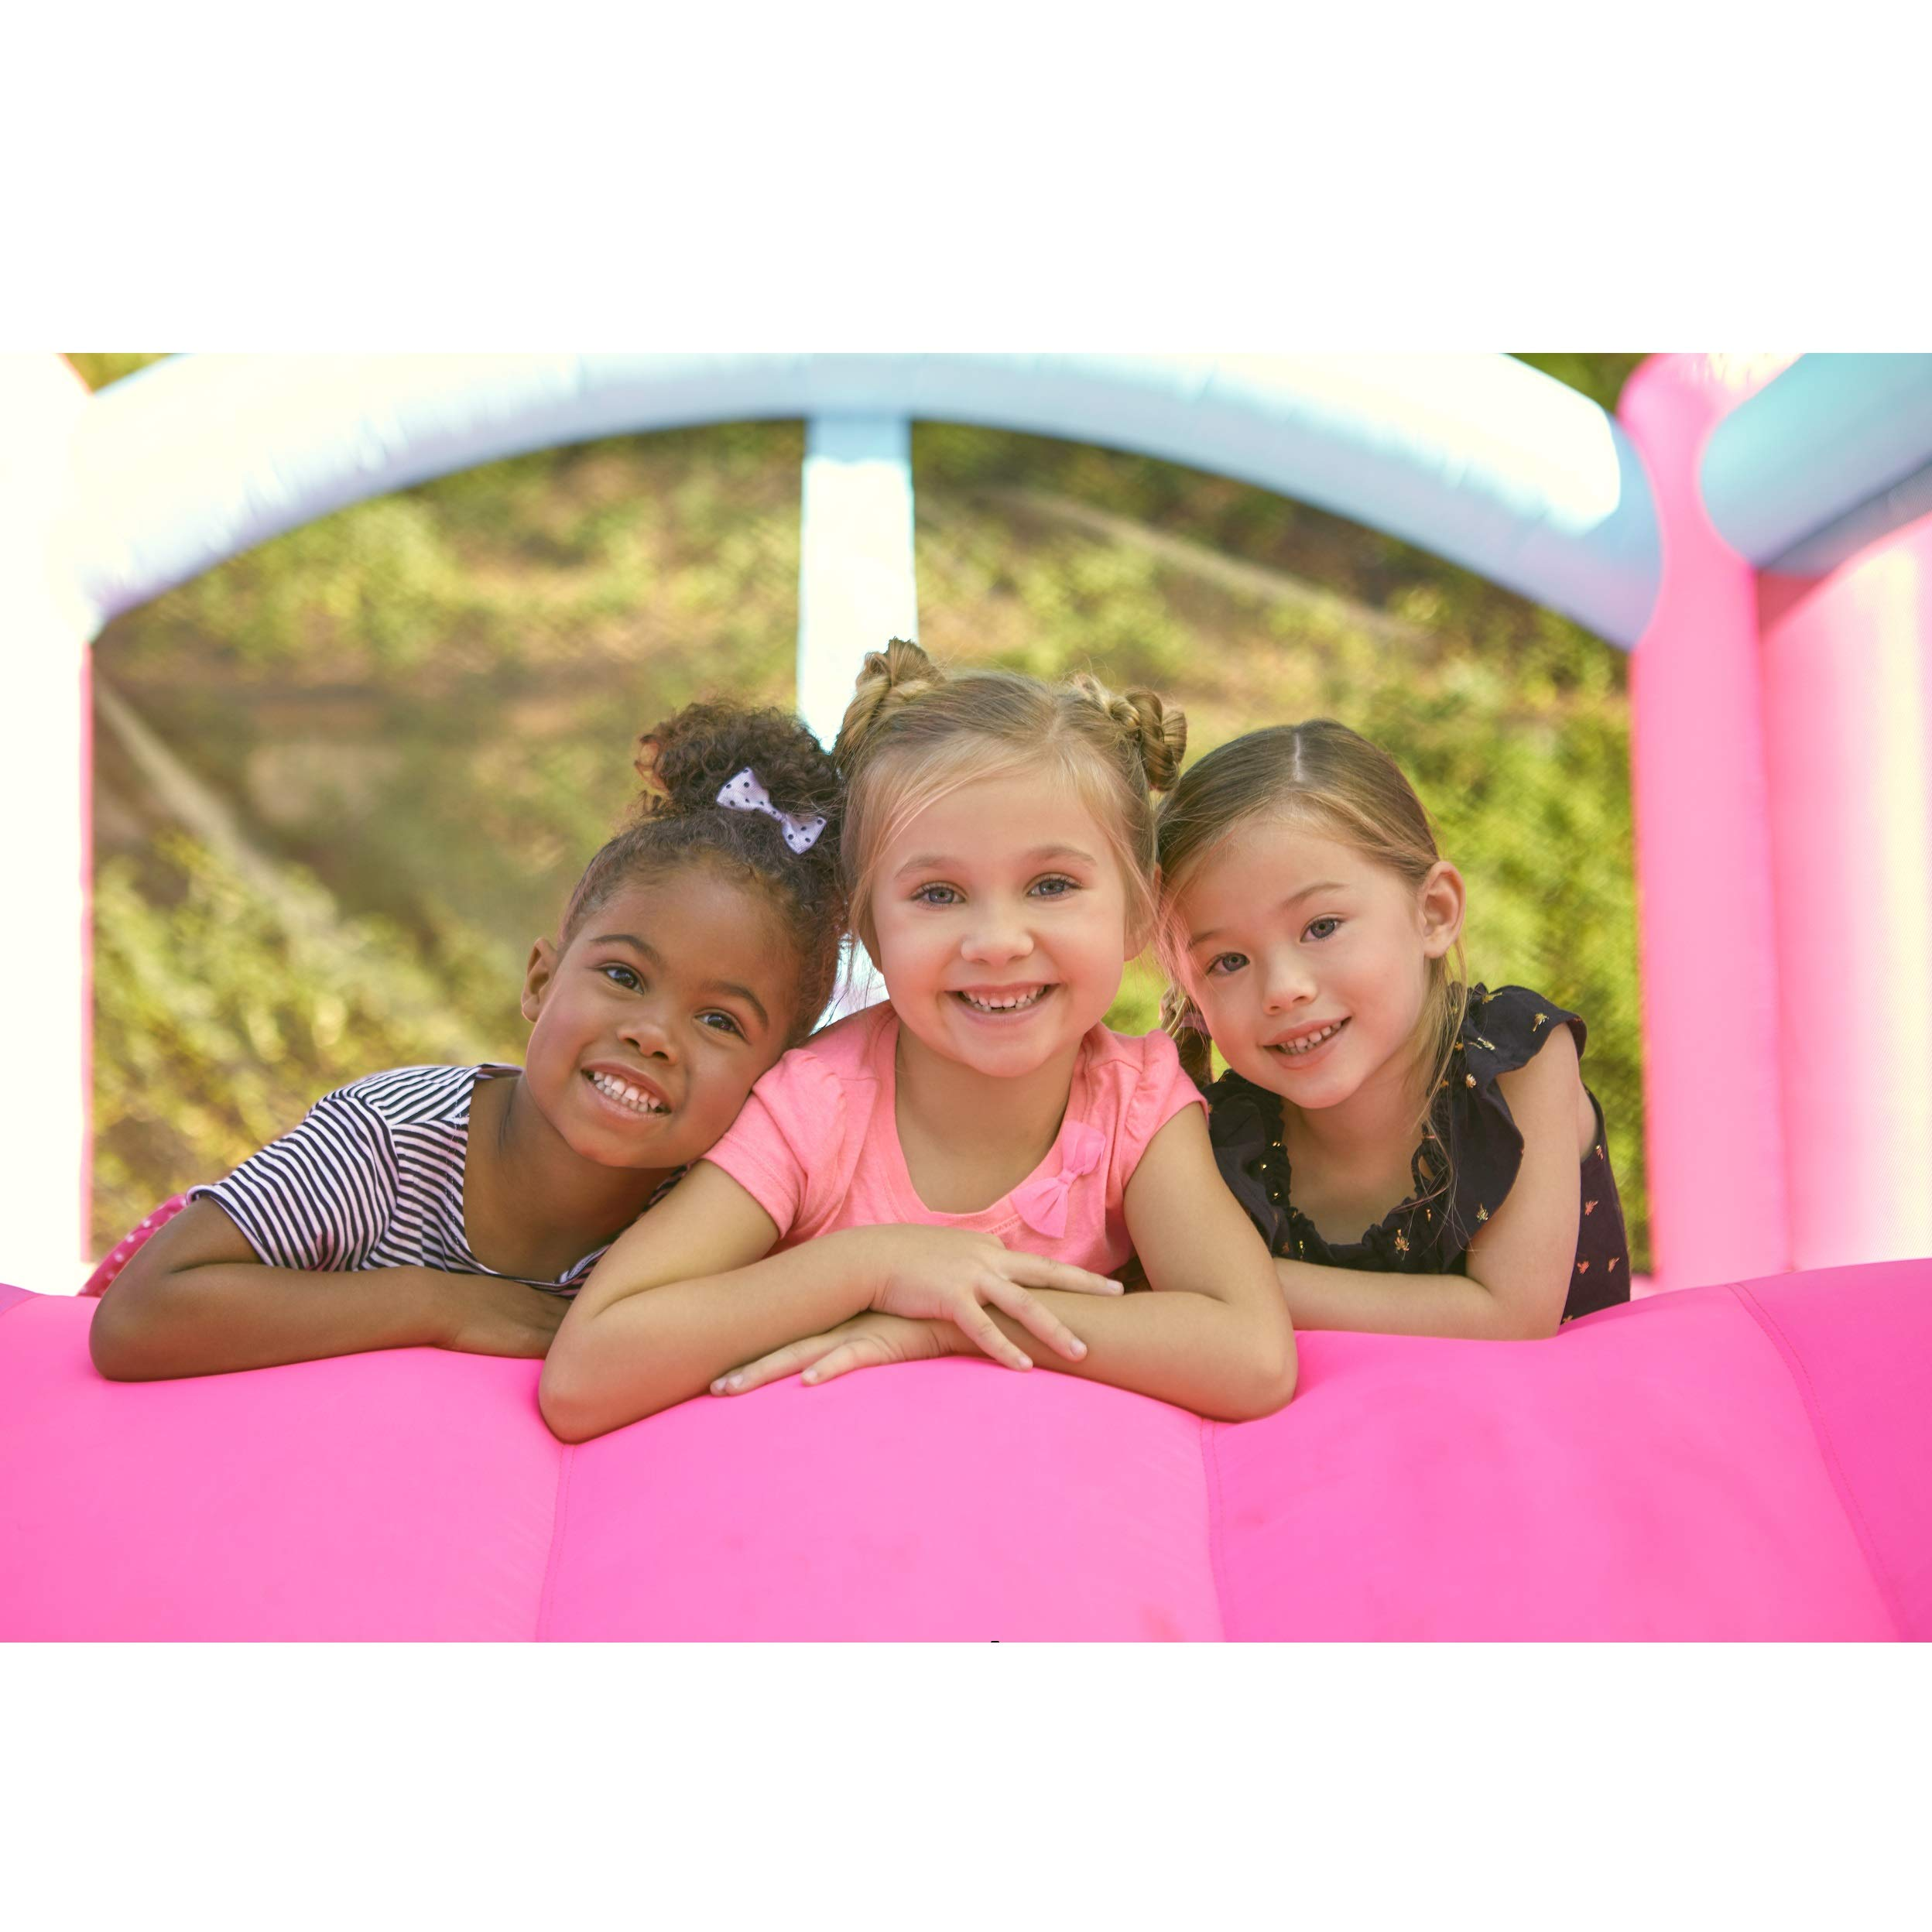 L.O.L. Surprise Jump 'n Slide Inflatable Bounce House with Blower by Little Tikes (Image #6)